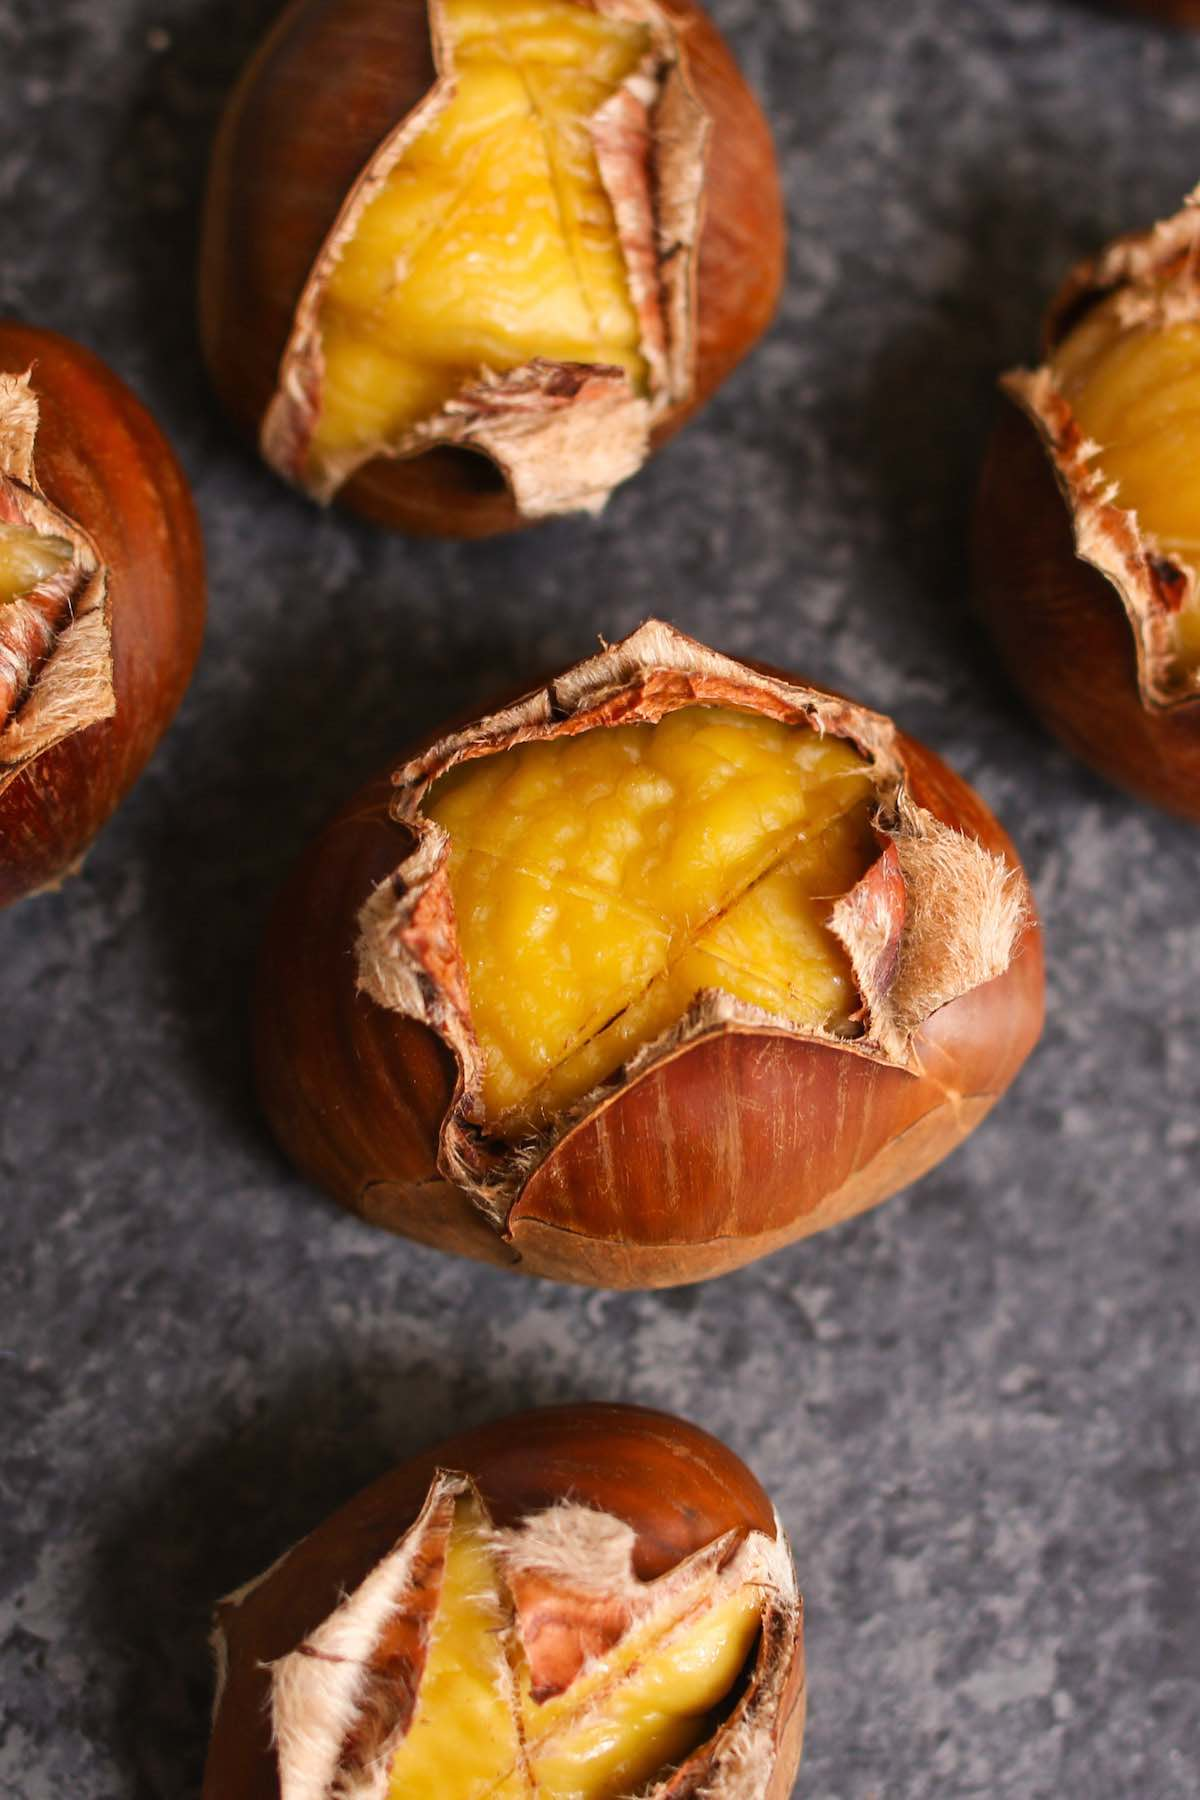 """If you are familiar with the Christmas song """"Chestnuts roasting on an open fire"""", then try making this special treat at home this year! Roasted Chestnuts are a great holiday appetizer and a healthy snack that's sweet with a nutty flavor."""